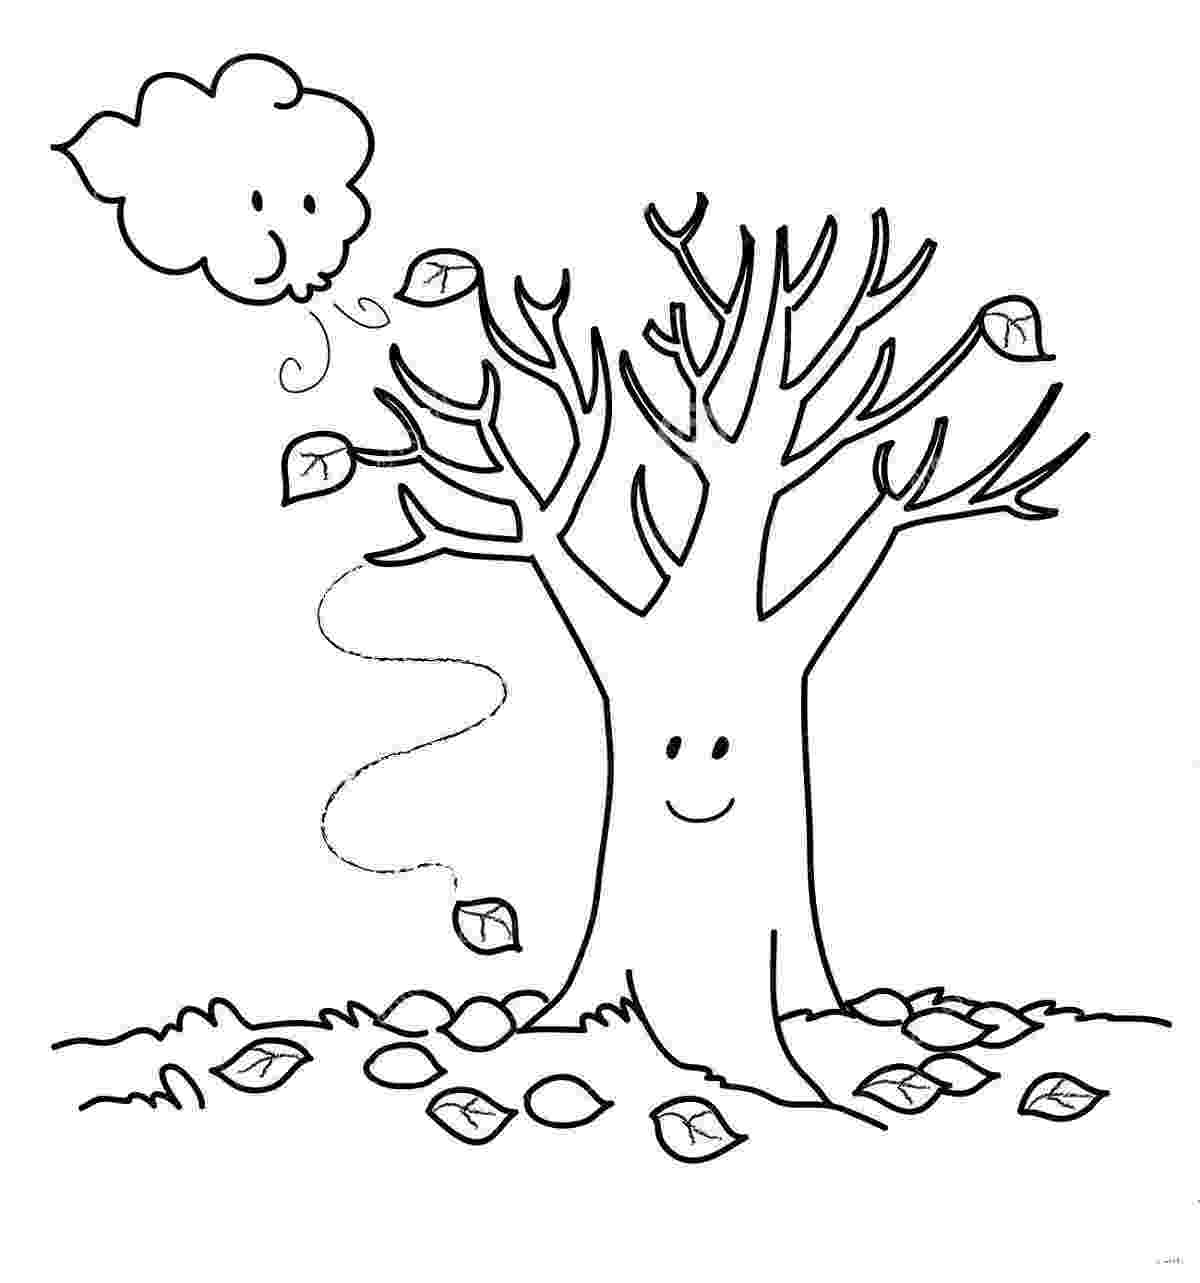 fall tree coloring pages make it easy crafts free printable autumn owl tree tree fall pages coloring